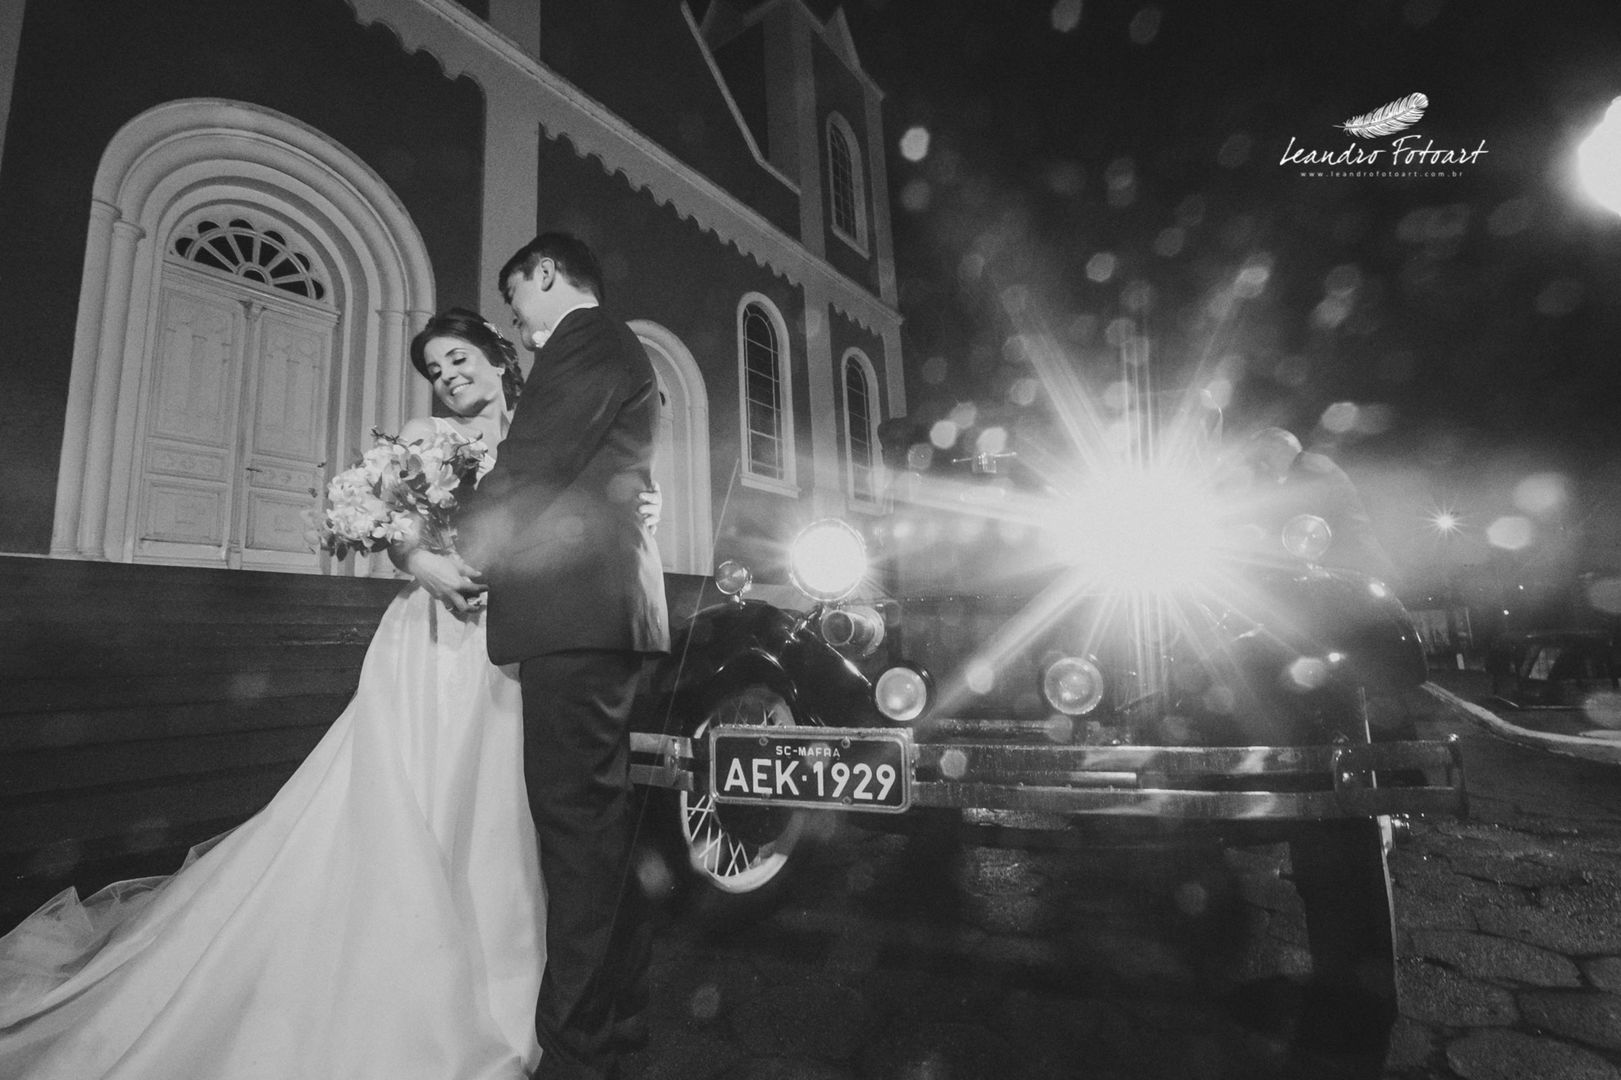 LUIS EDUARDO + RAFAELA - WEDDINGDAY